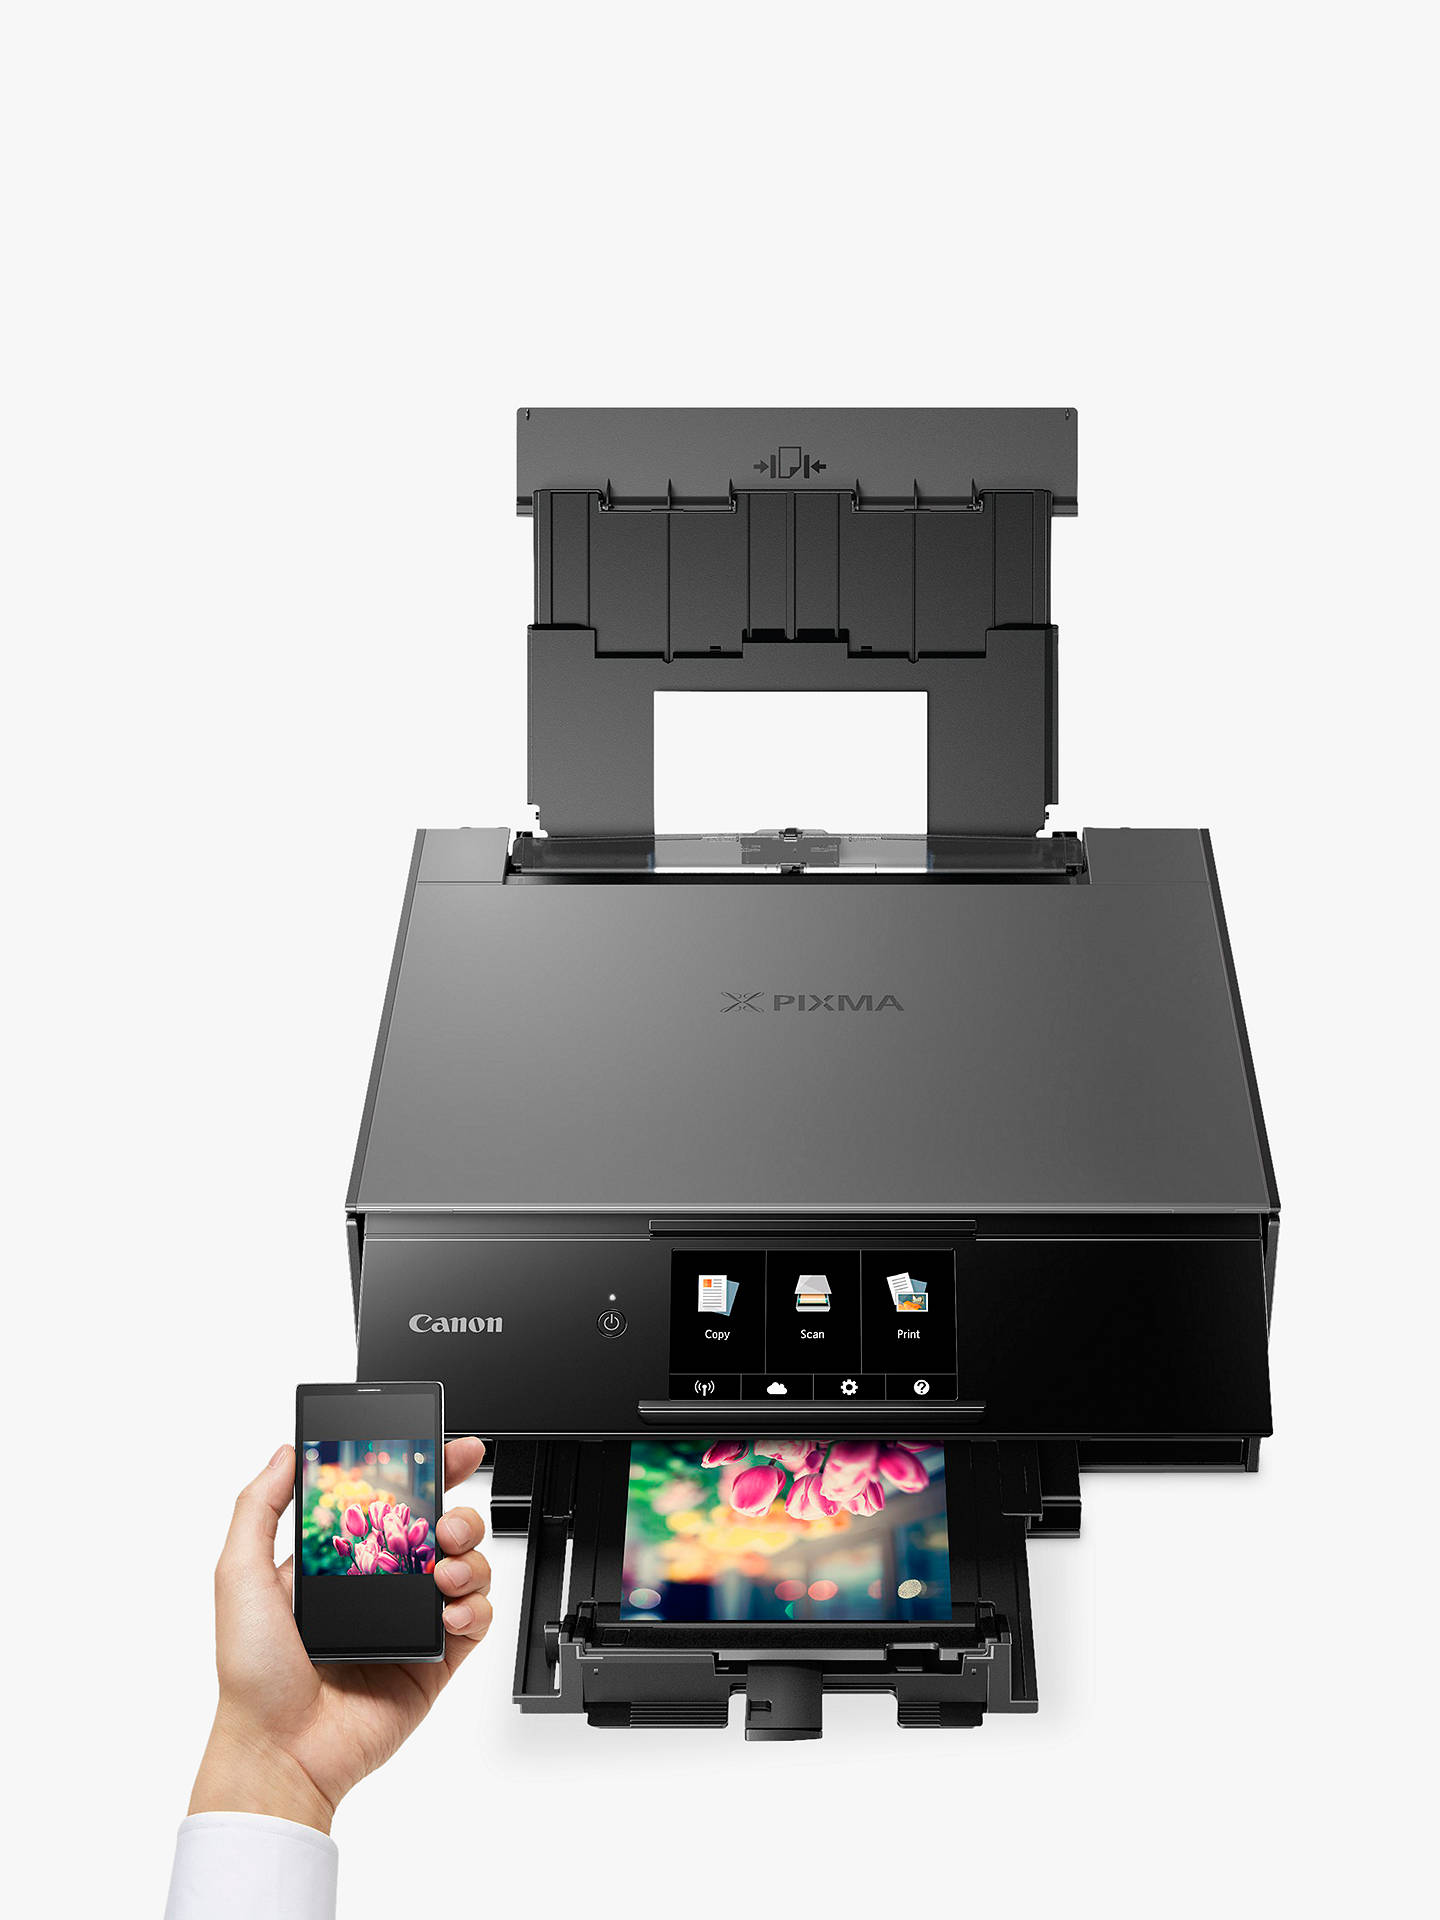 BuyCanon PIXMA TS9150 All-in-One Wireless Wi-Fi Printer with Auto-Tilting Touch Screen, Dark Grey Online at johnlewis.com